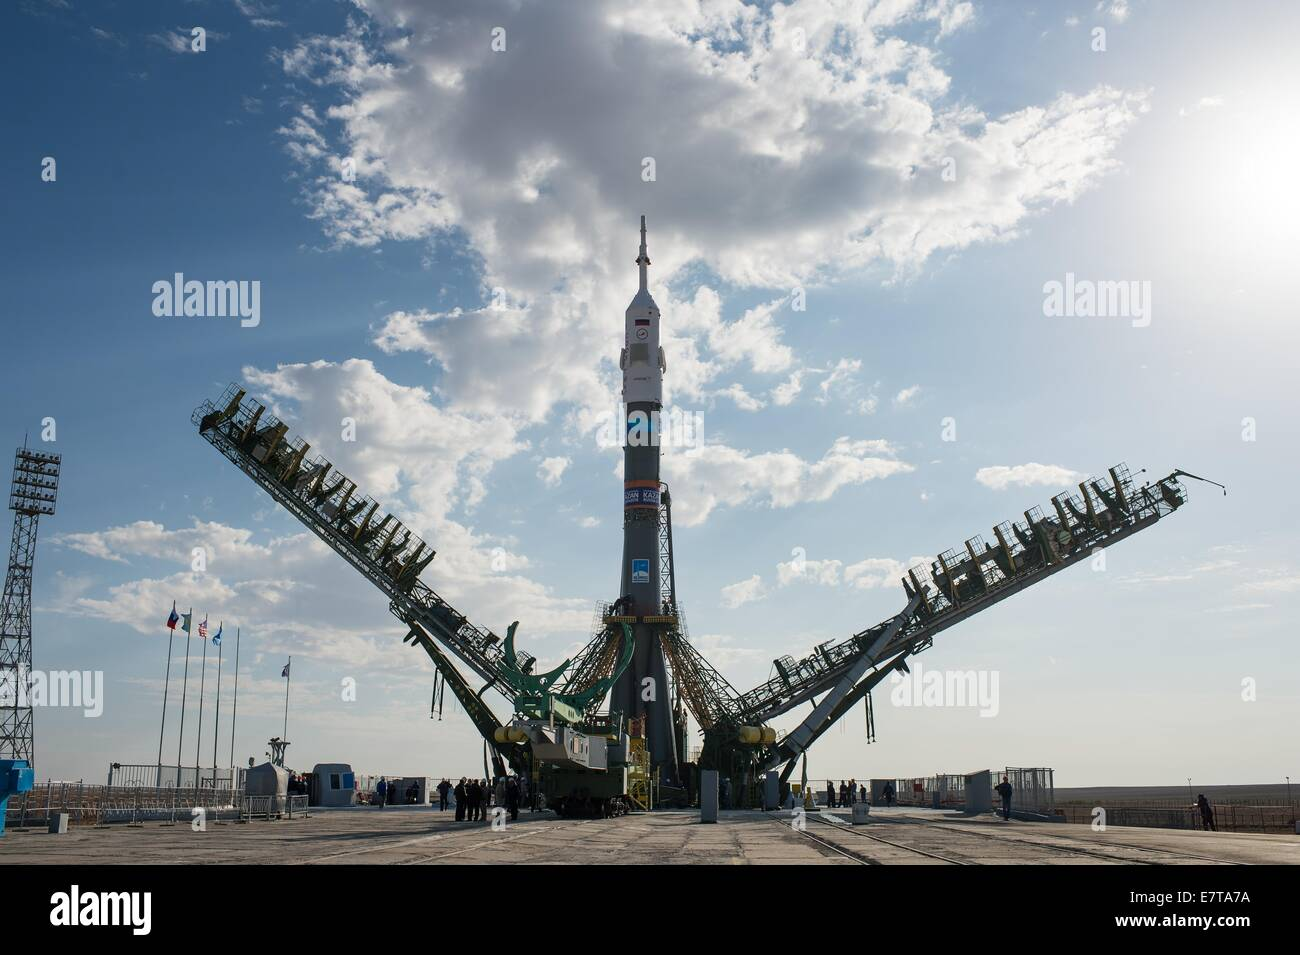 The gantry arms begin to close around the Soyuz TMA-14M spacecraft at the Baikonur Cosmodrome September 23, 2014 - Stock Image